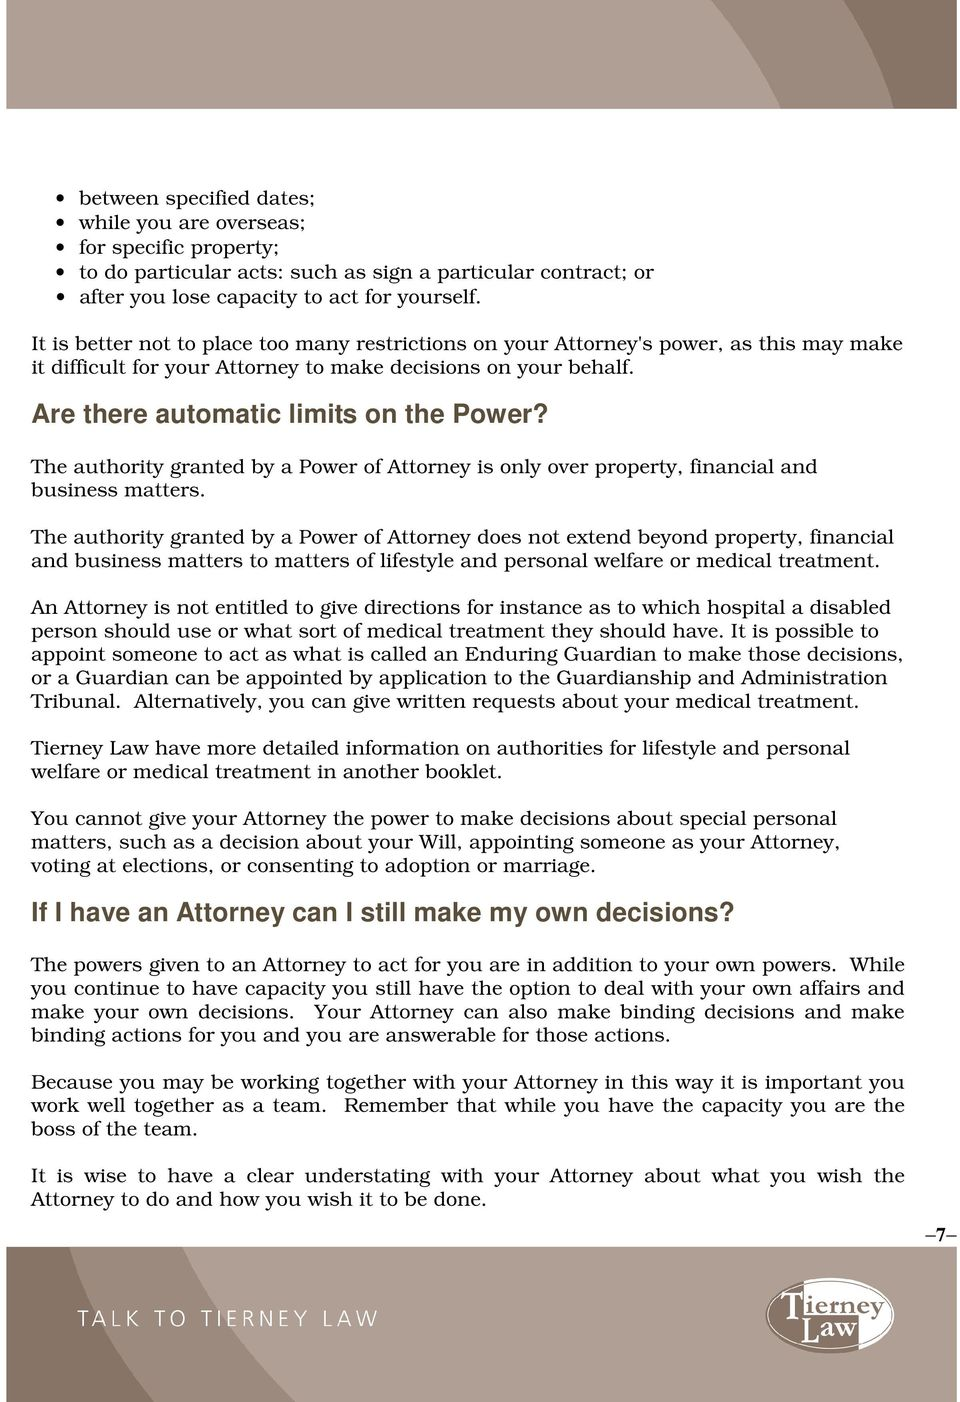 The authority granted by a Power of Attorney is only over property, financial and business matters.